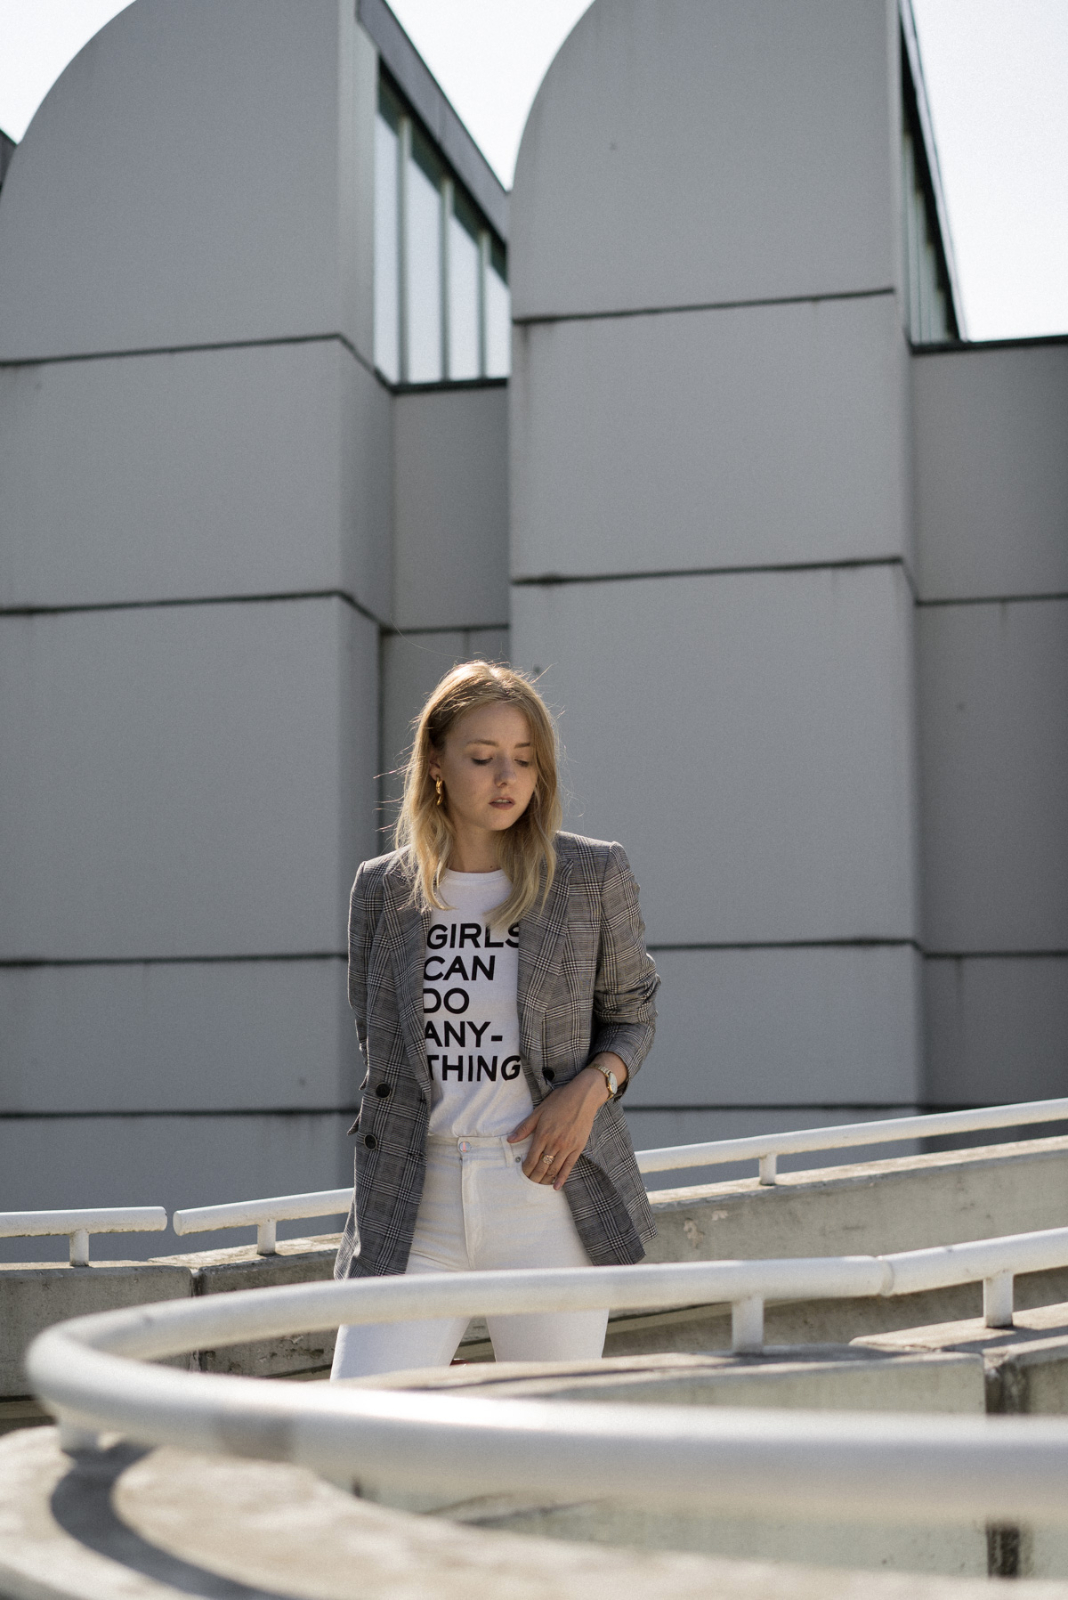 Checked Blazer_The-Limits-of-Control-Fashion-Fashionblogger-Blogger-Berlin-Deutschland-Modeblog-Modeblogger_zadig&voltaire_ Outfit_Streetstyle_Blogger_Fashionblogger_1